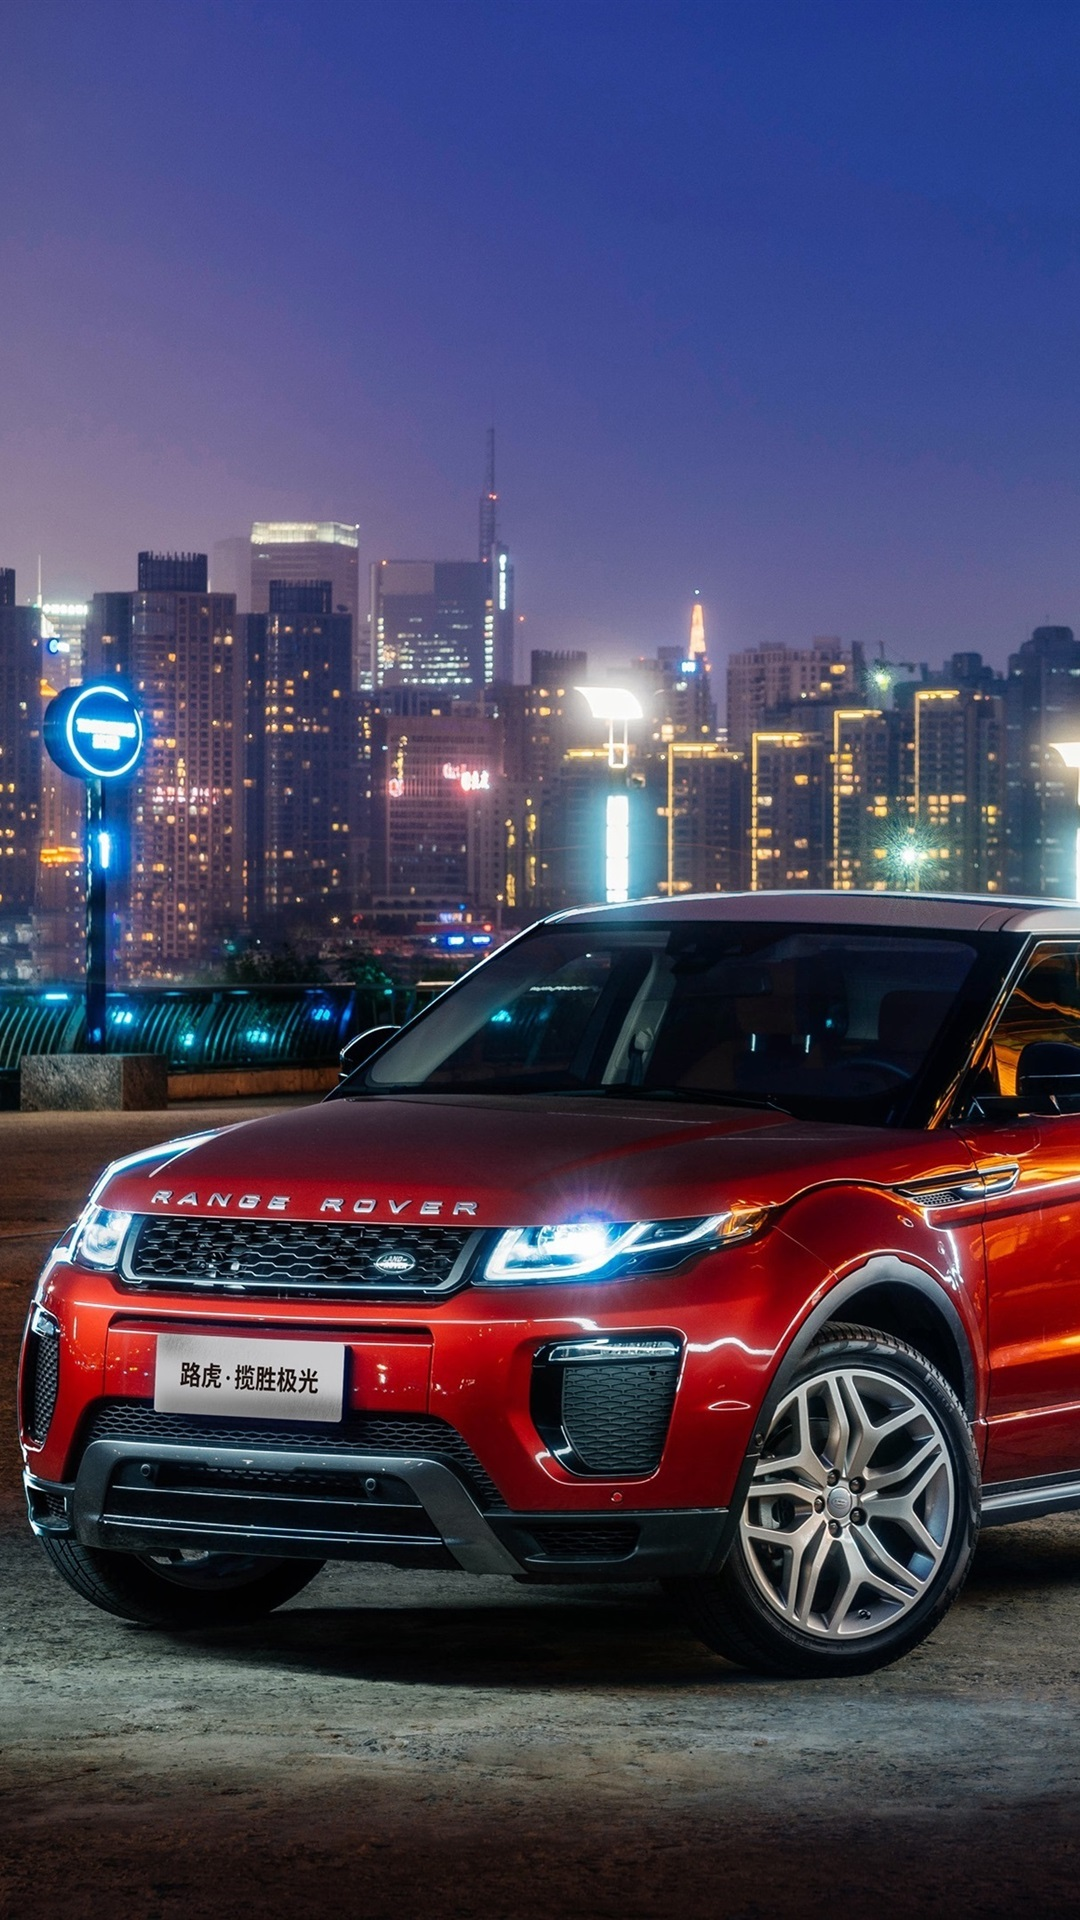 Land Rover Range Rover Evoque Red Suv At City Night 1080x1920 Iphone